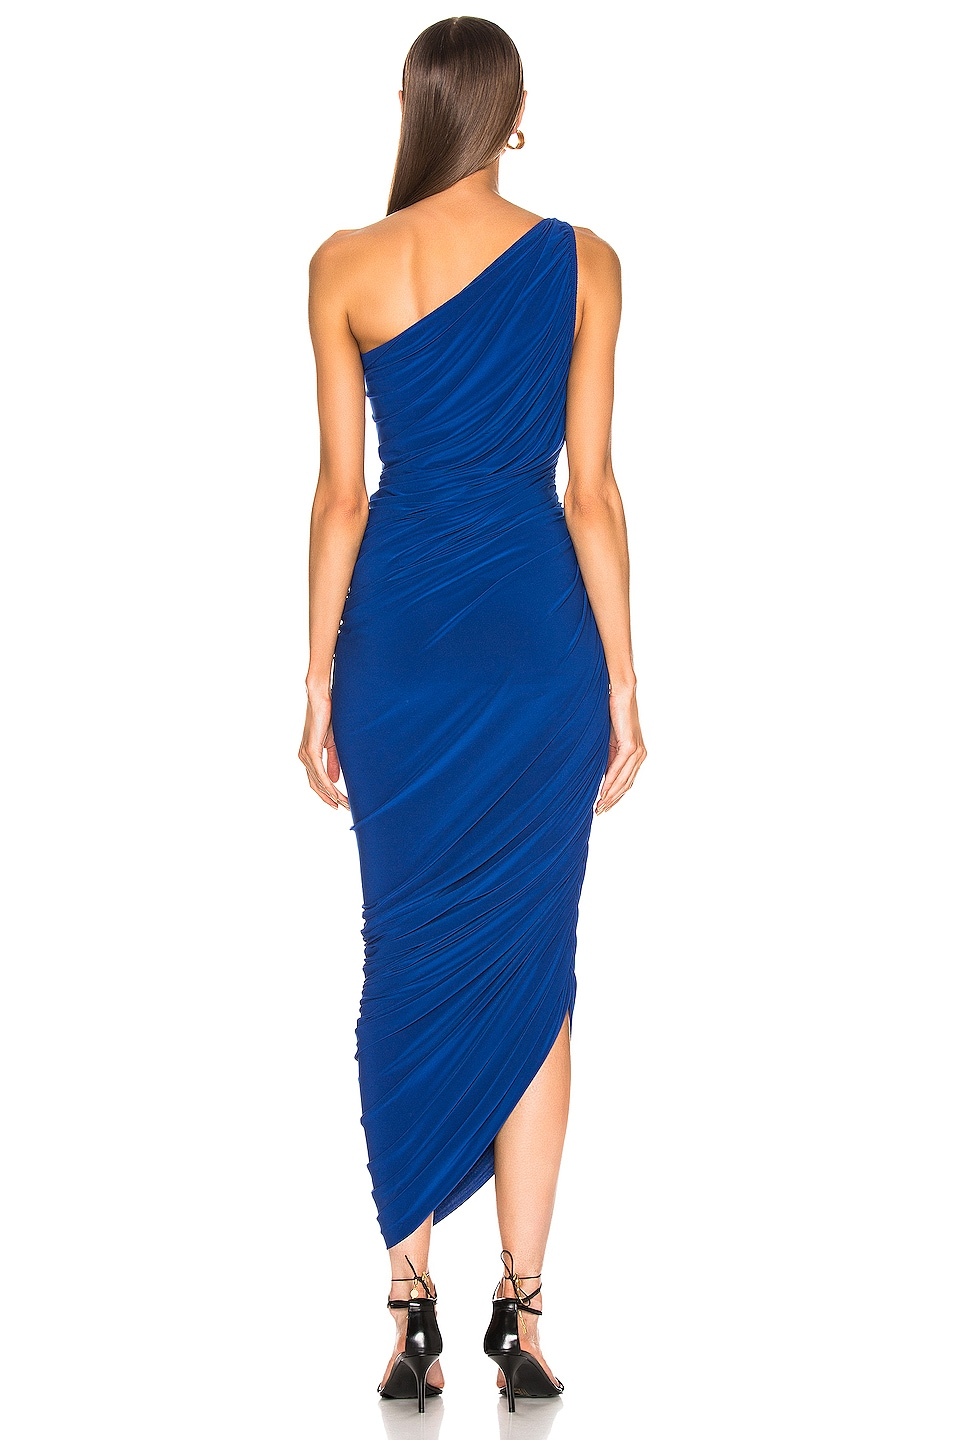 Image 3 of Norma Kamali Diana Dress in Berry Blue